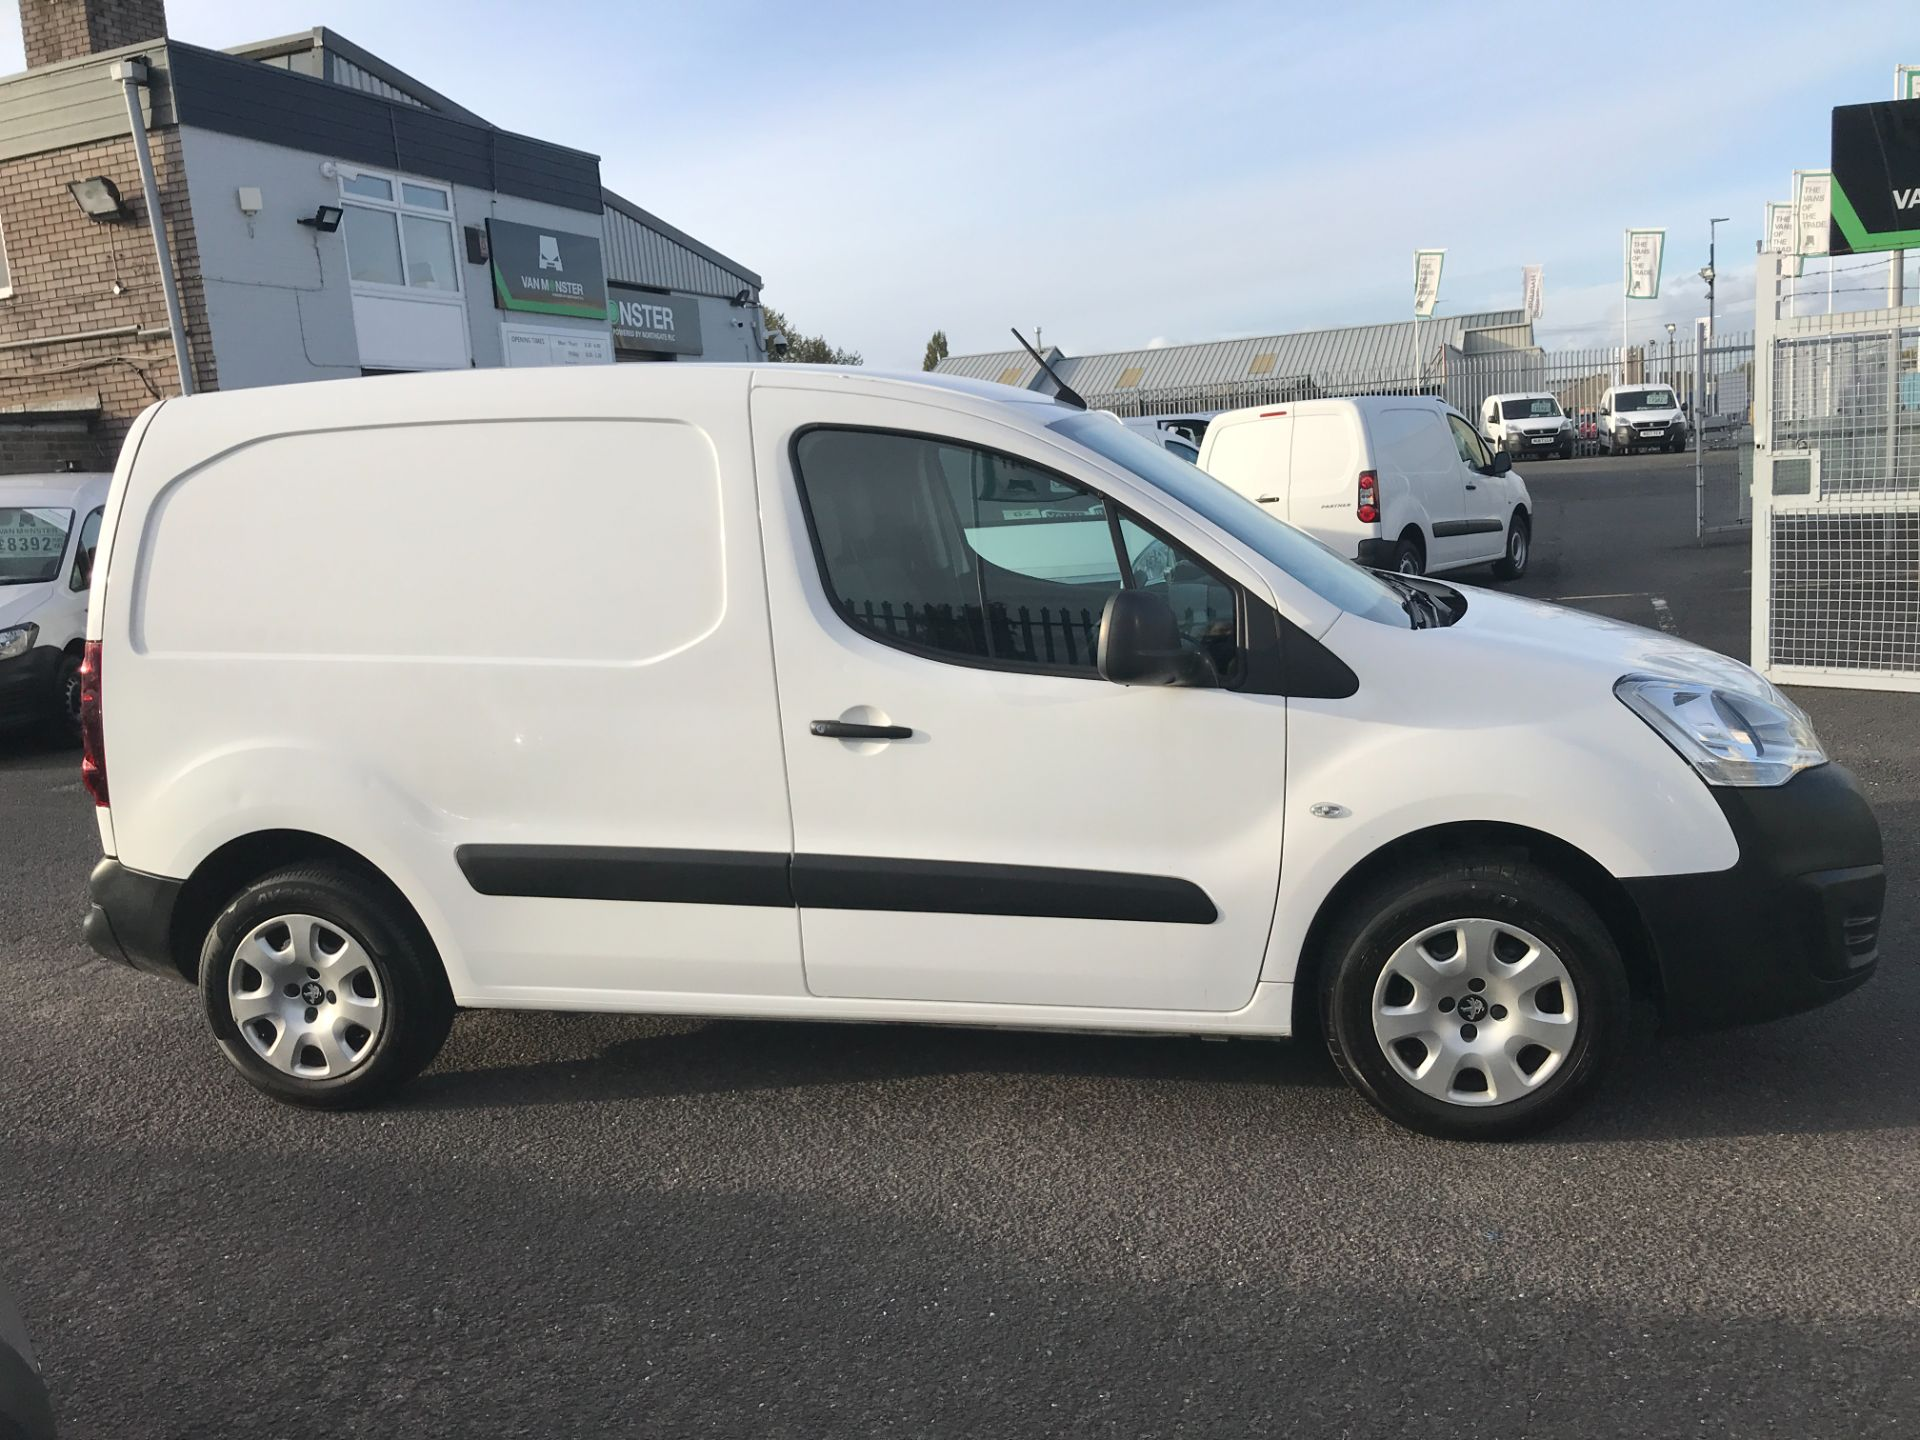 2016 Peugeot Partner L1 850 1.6BLUEHDI 100PS PROFESSIONAL EURO 6 (NU66YAY) Image 7